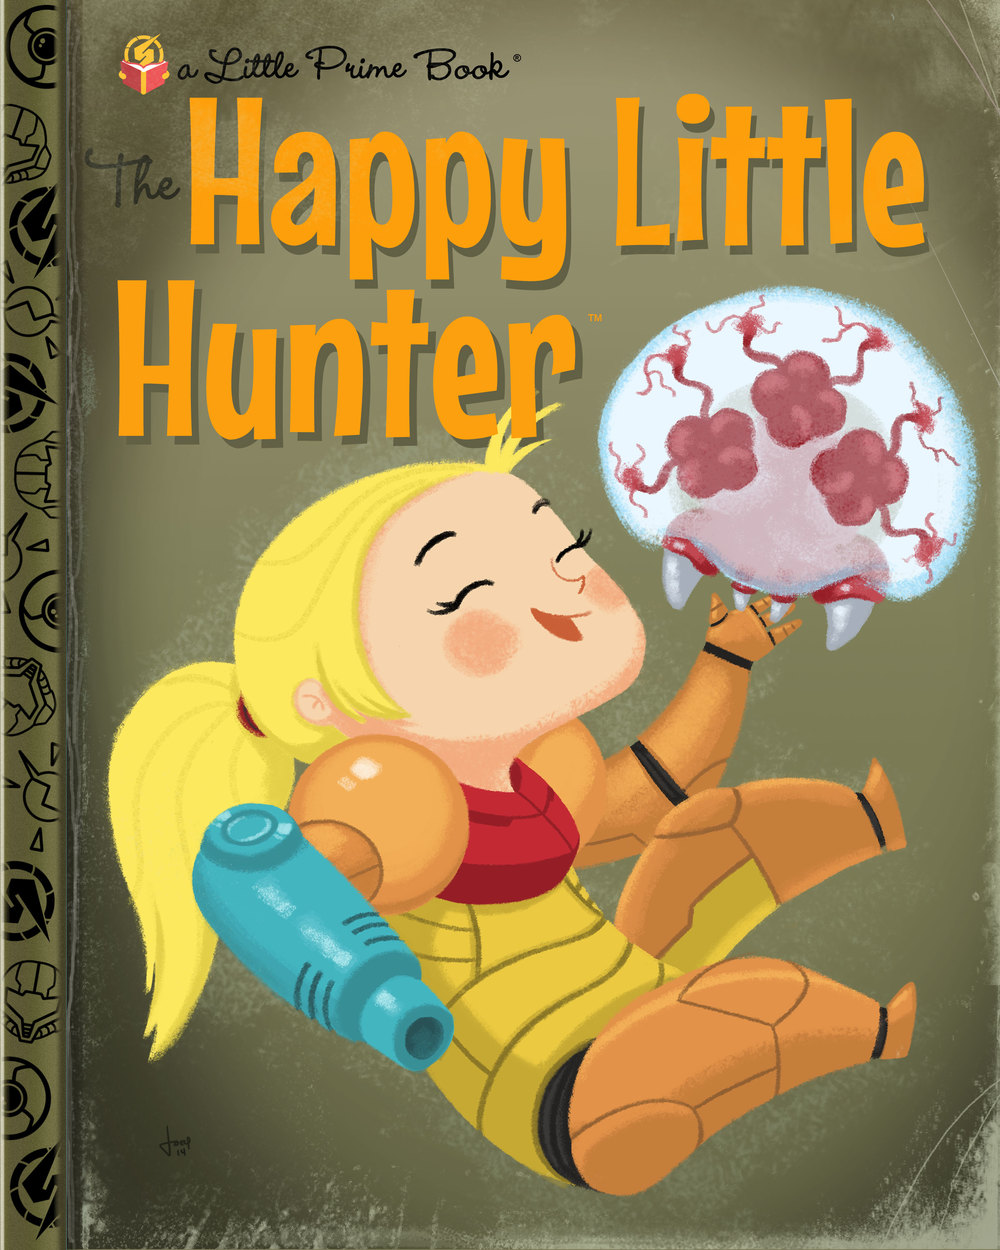 The-Little-Hunter.jpg